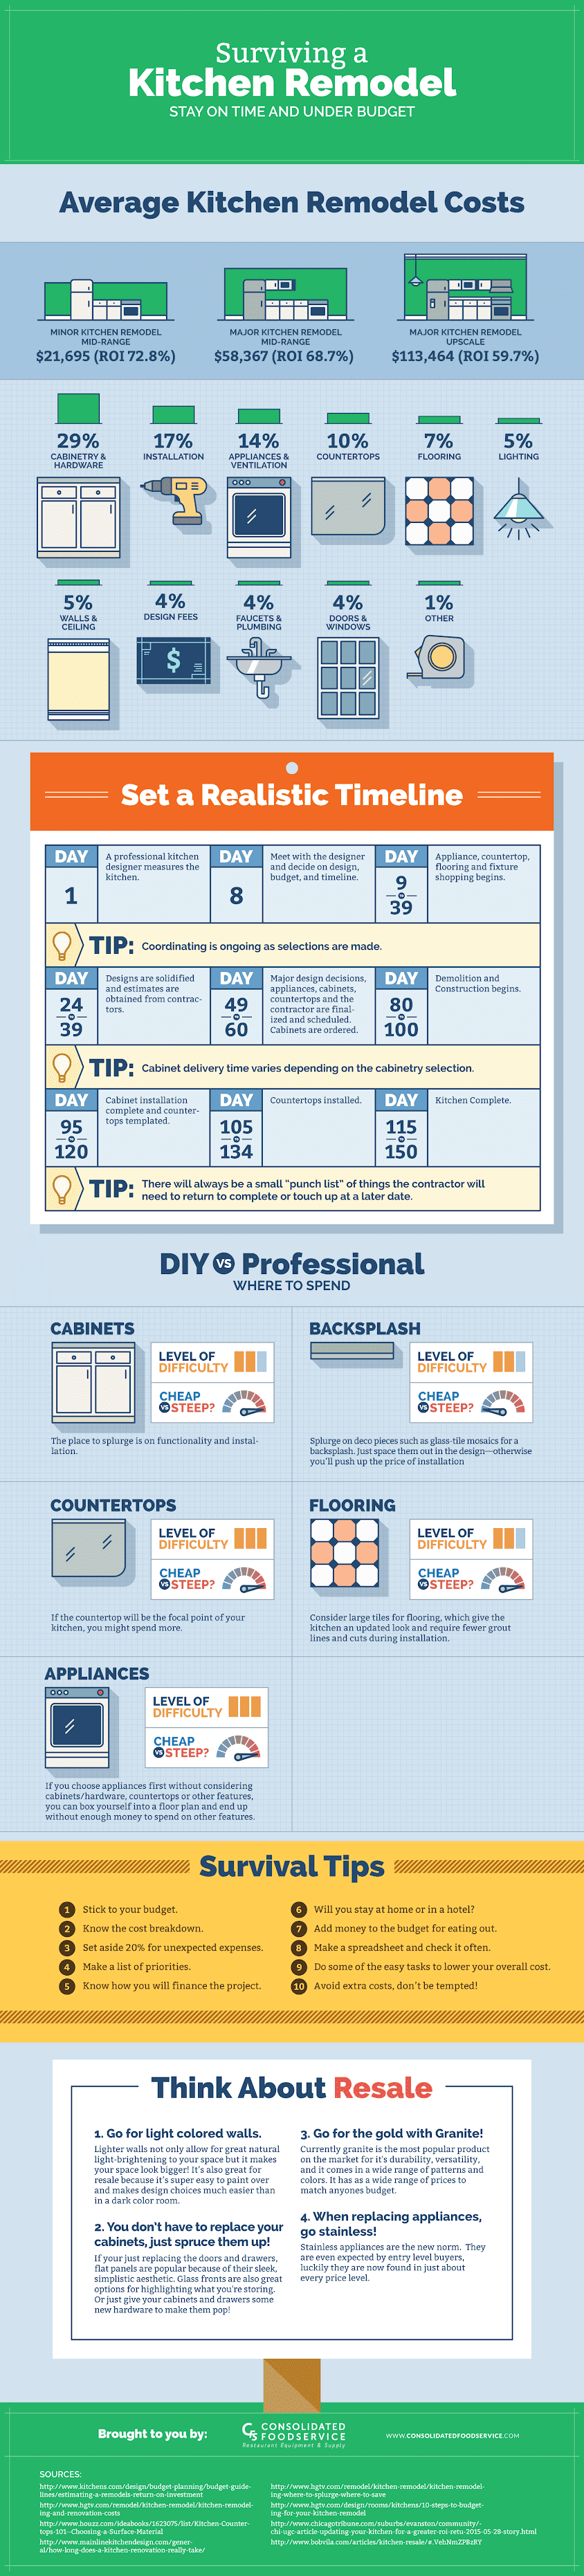 Surviving A Kitchen Remodel: Stay On Time & Under Budget #infographic